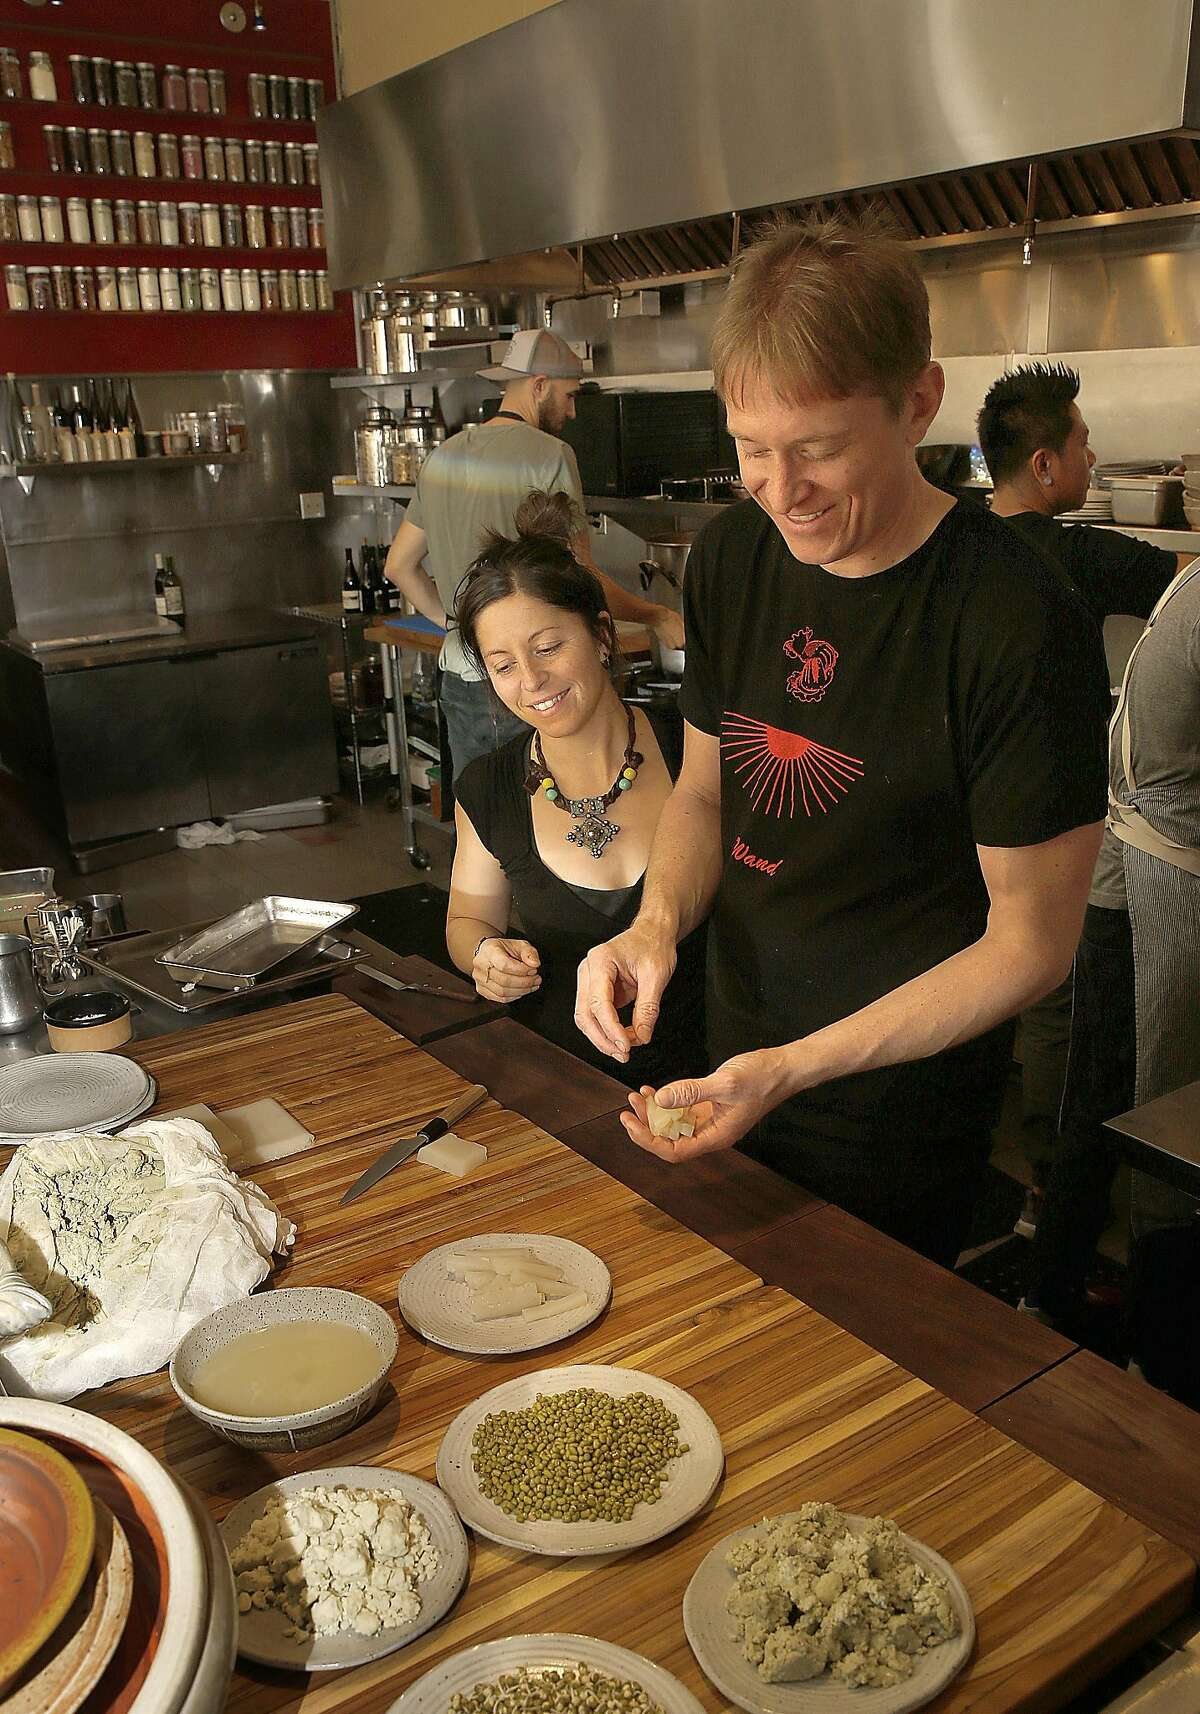 Chefs Cortney Burns (left) and Nick Balla (right) cook at Motze on Friday, November 18, 2016, in San Francisco, Calif.